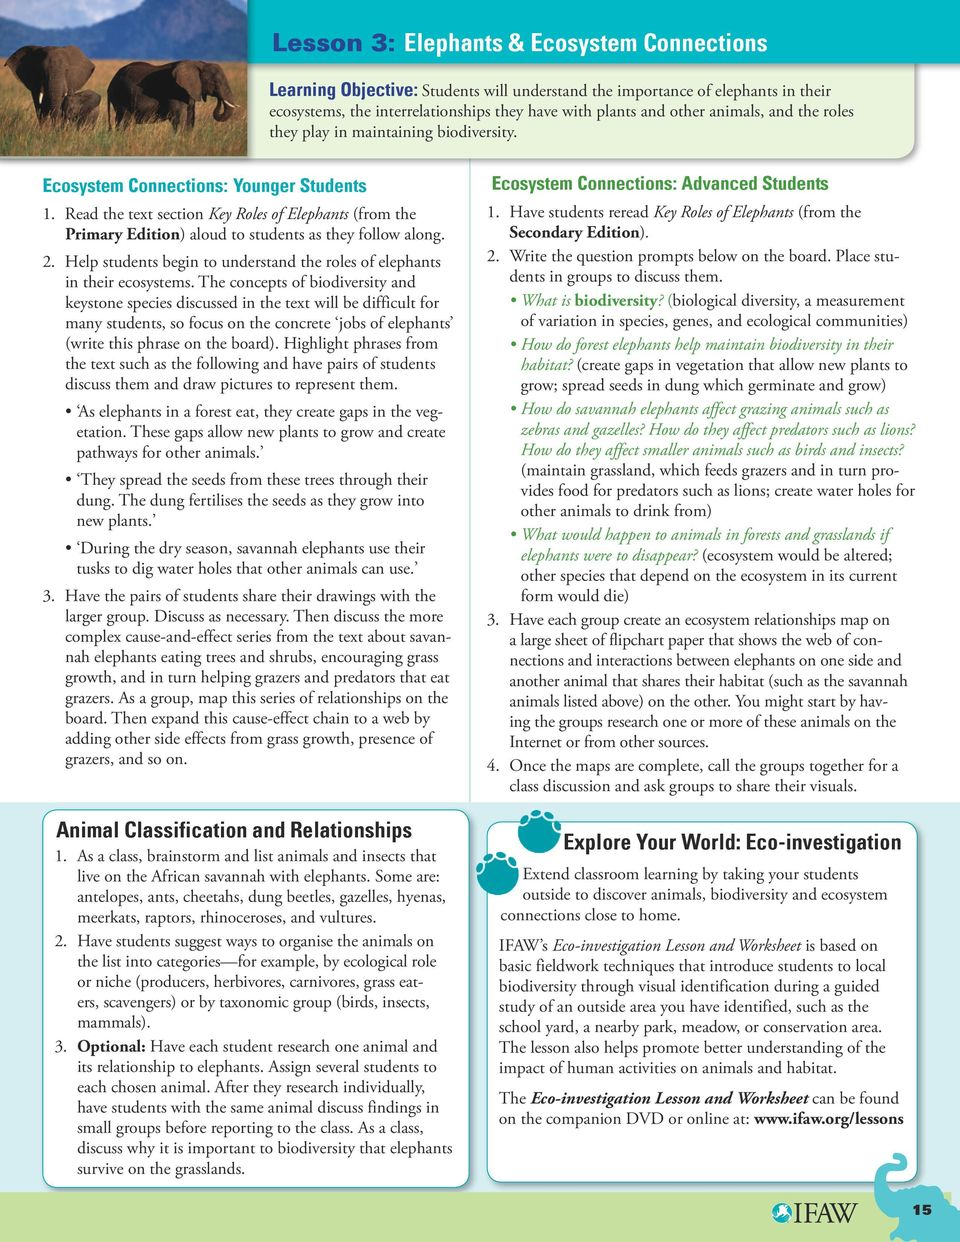 Read the text section Key Roles of Elephants (from the Primary Edition) aloud to students as they follow along. 2. Help students begin to understand the roles of elephants in their ecosystems.